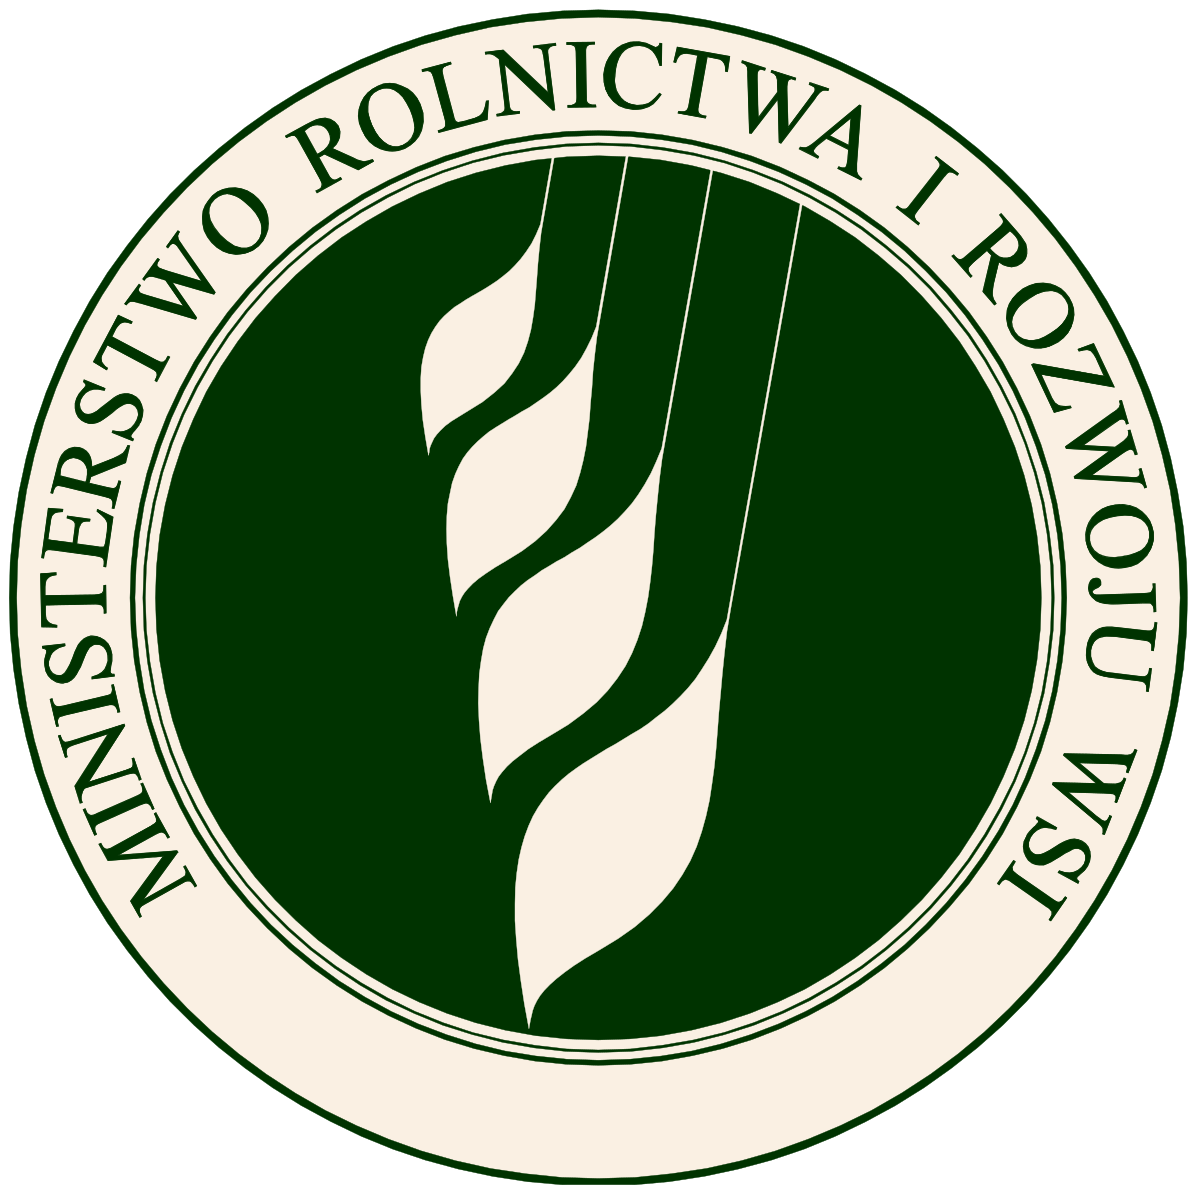 logo ministerswto rolnictwa